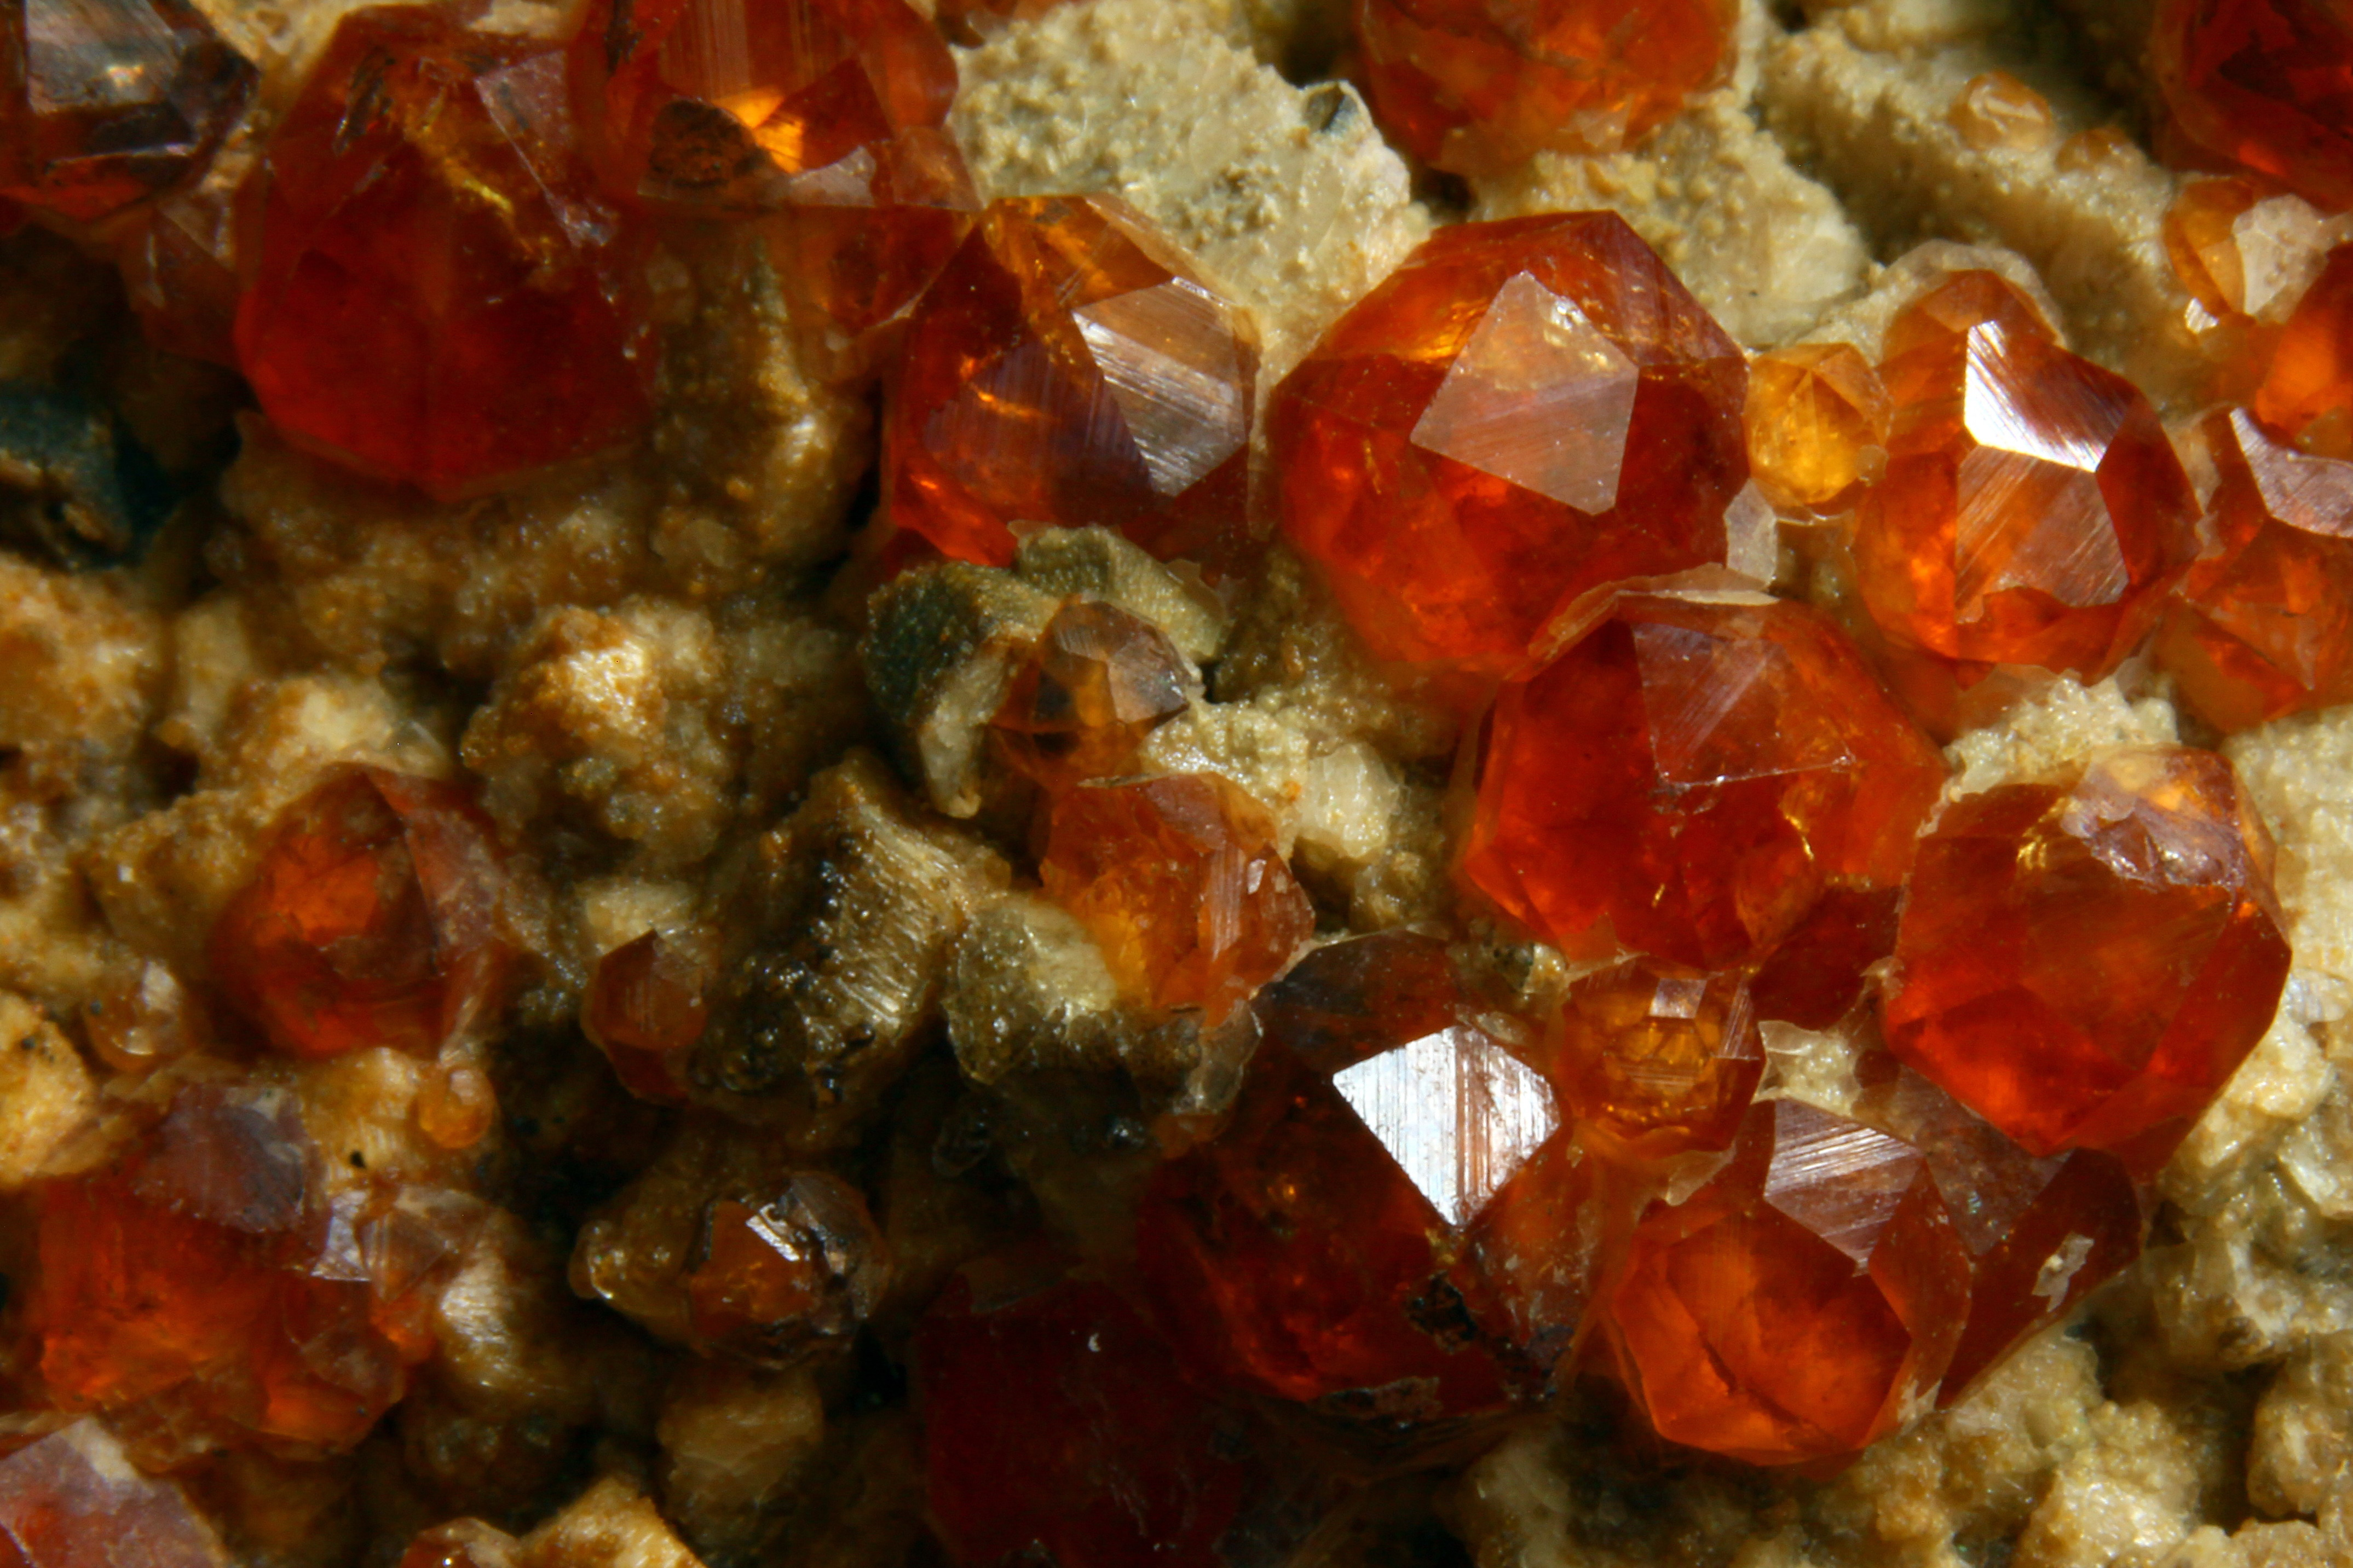 Let's talk about garnets